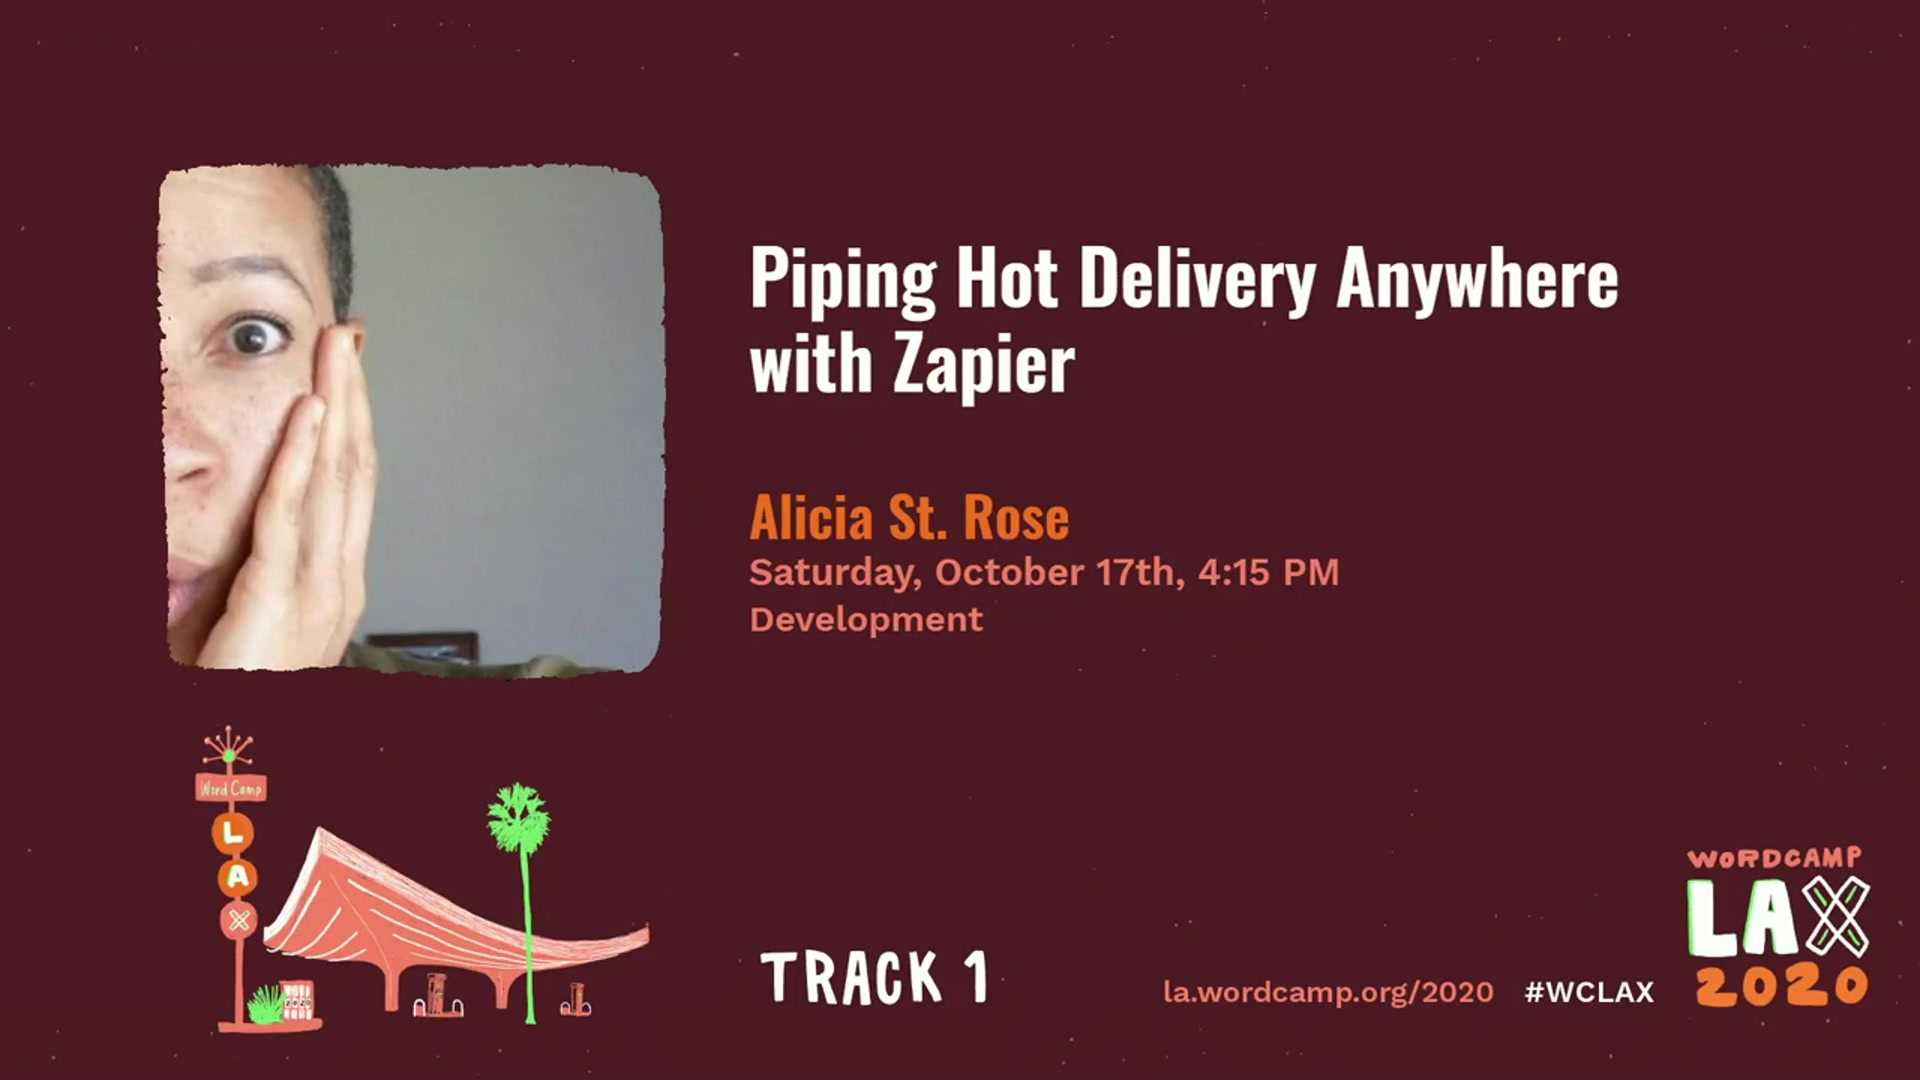 Alicia St. Rose: Piping Hot Delivery Anywhere with Zapier